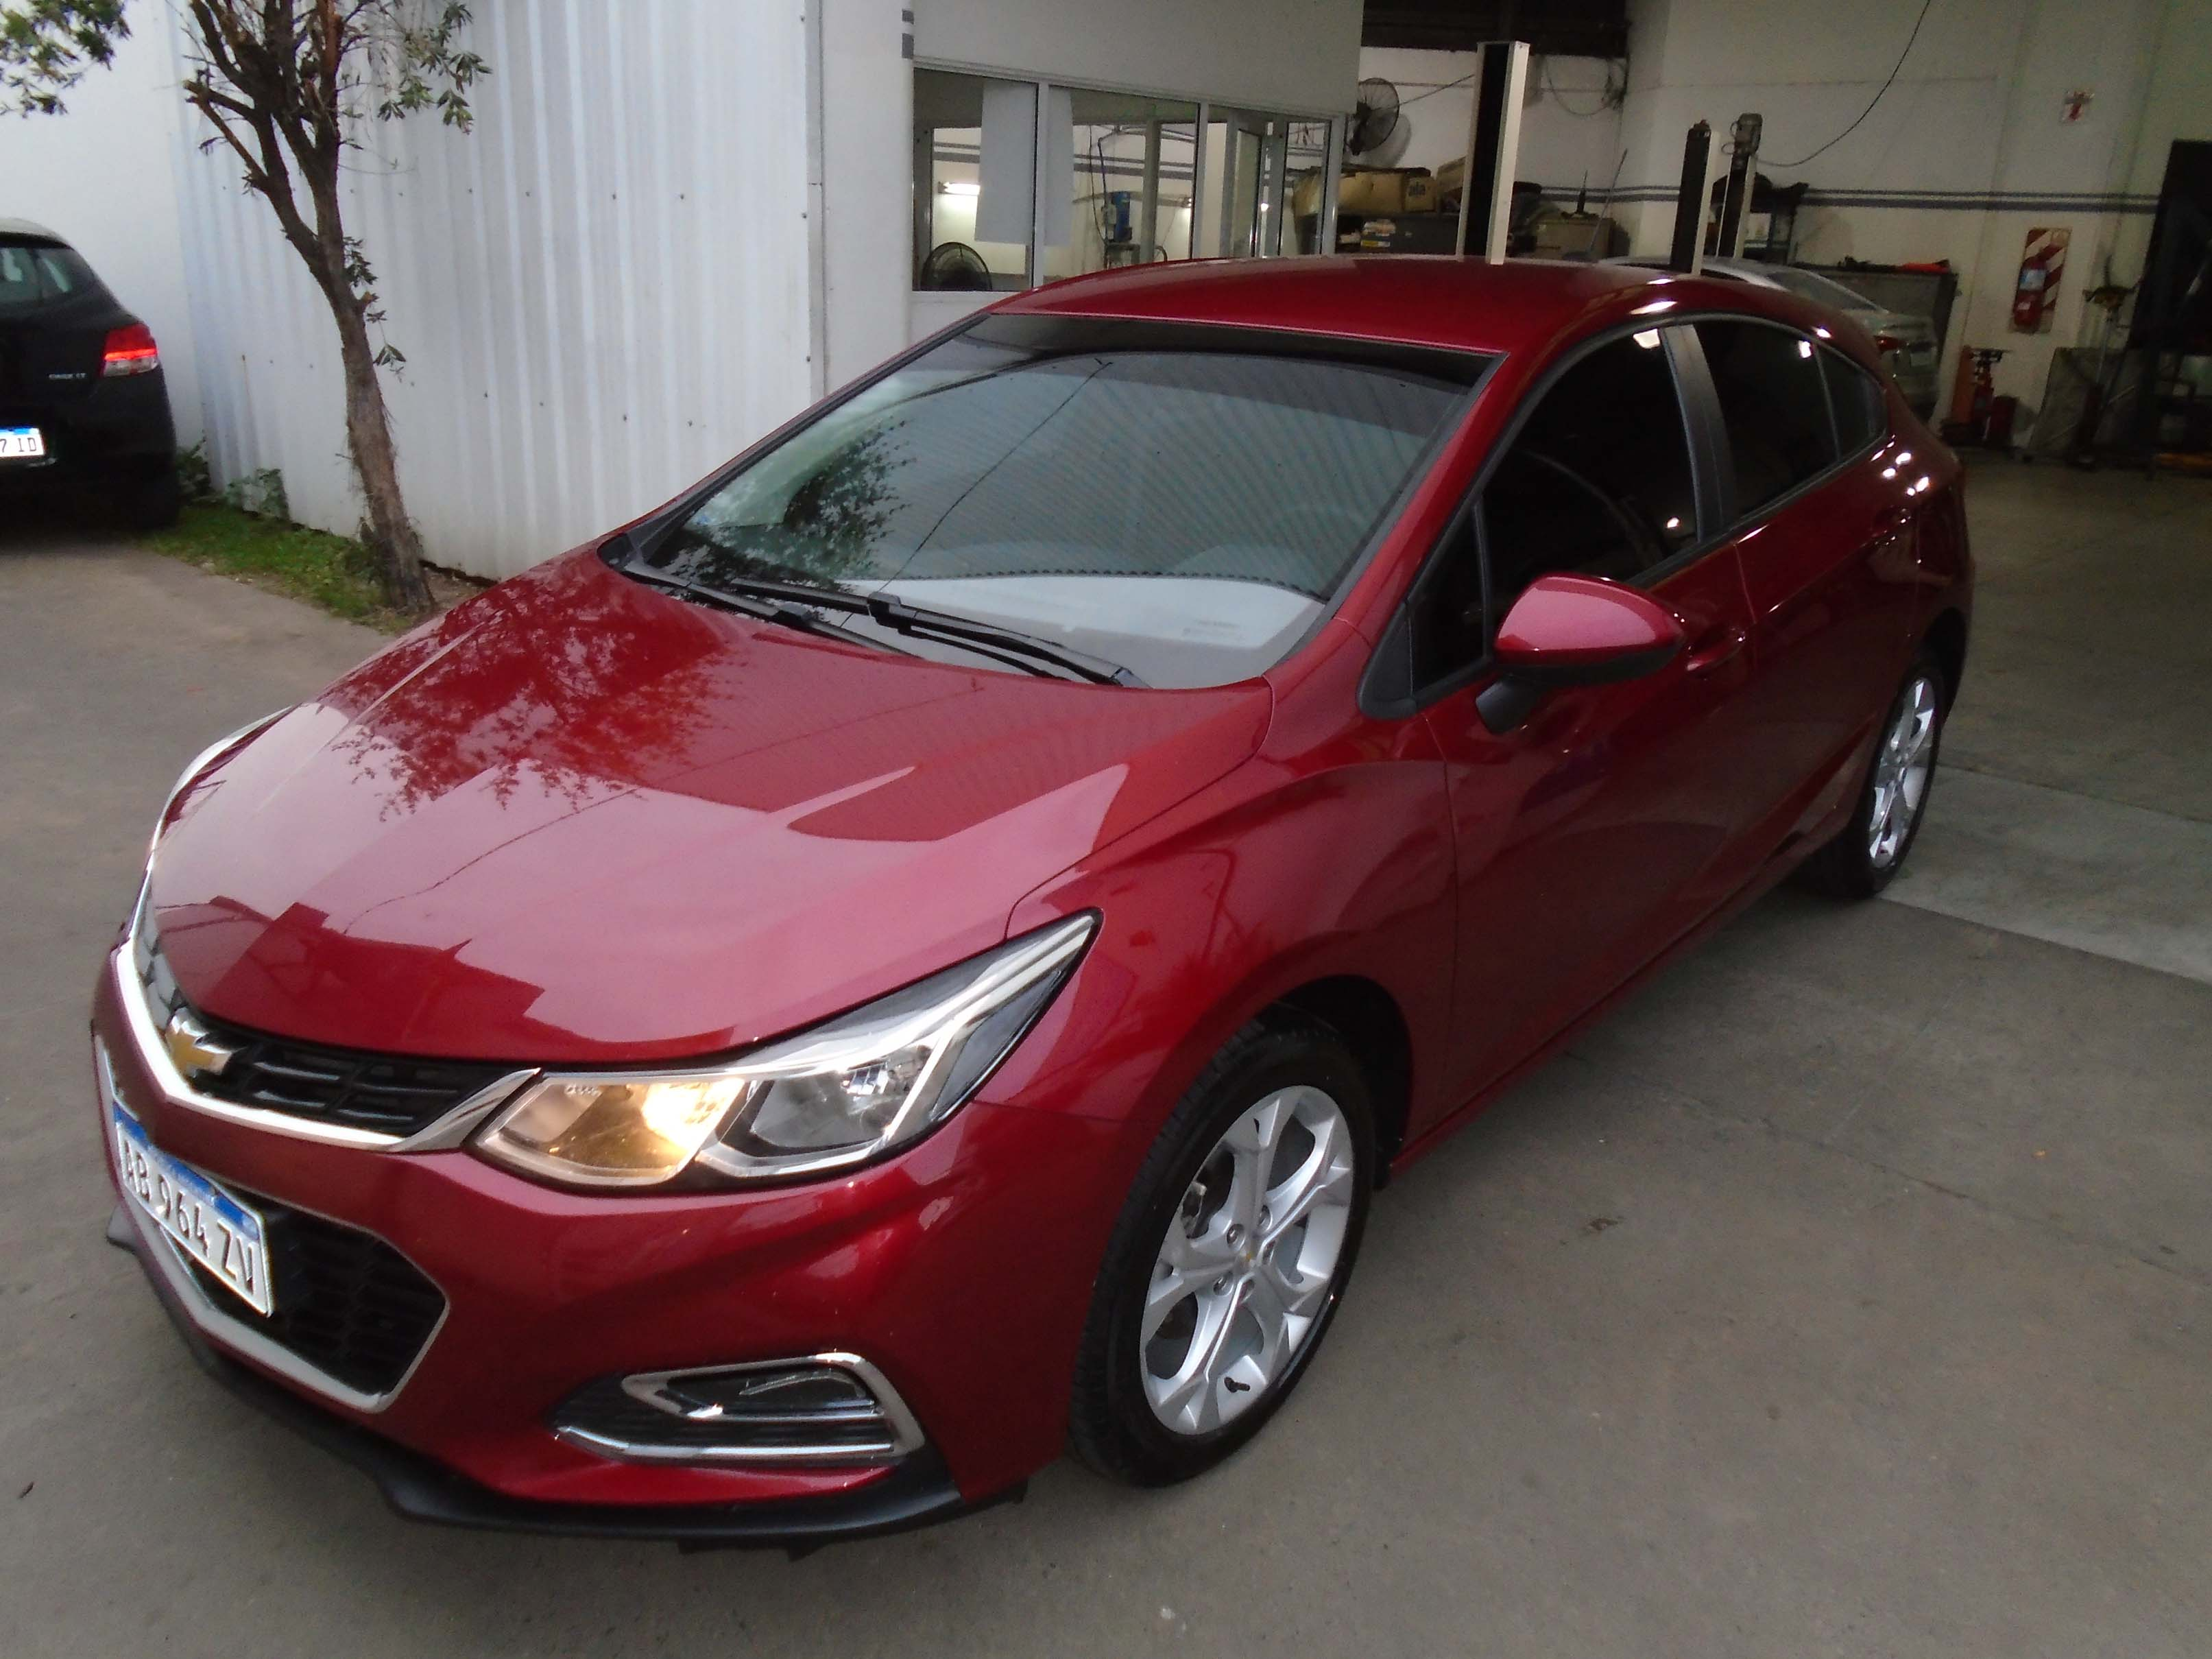 2017 CHEVROLET CRUZE TURBO LT 1,4